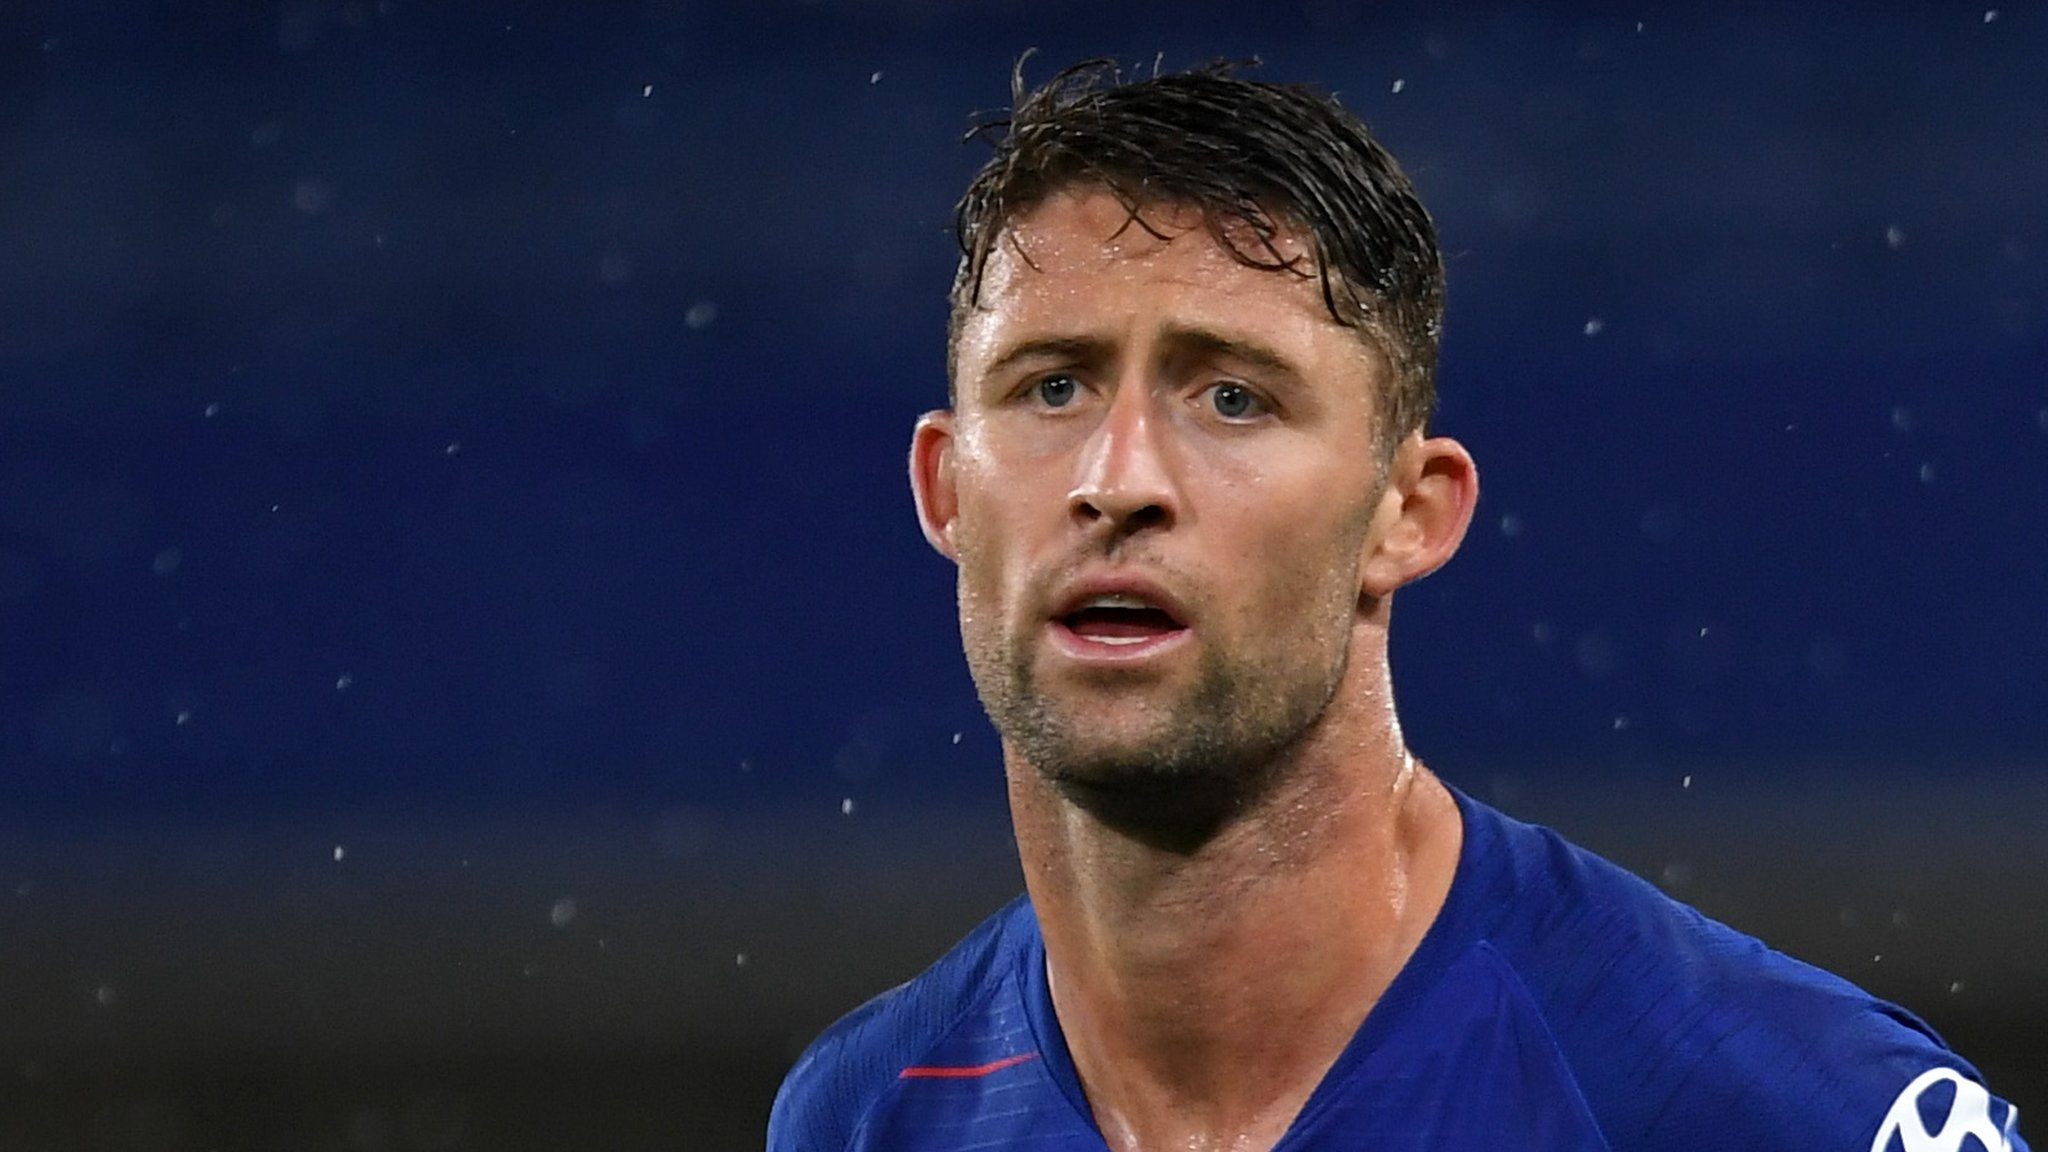 'Understandable' out of favour Cahill is upset - Zola